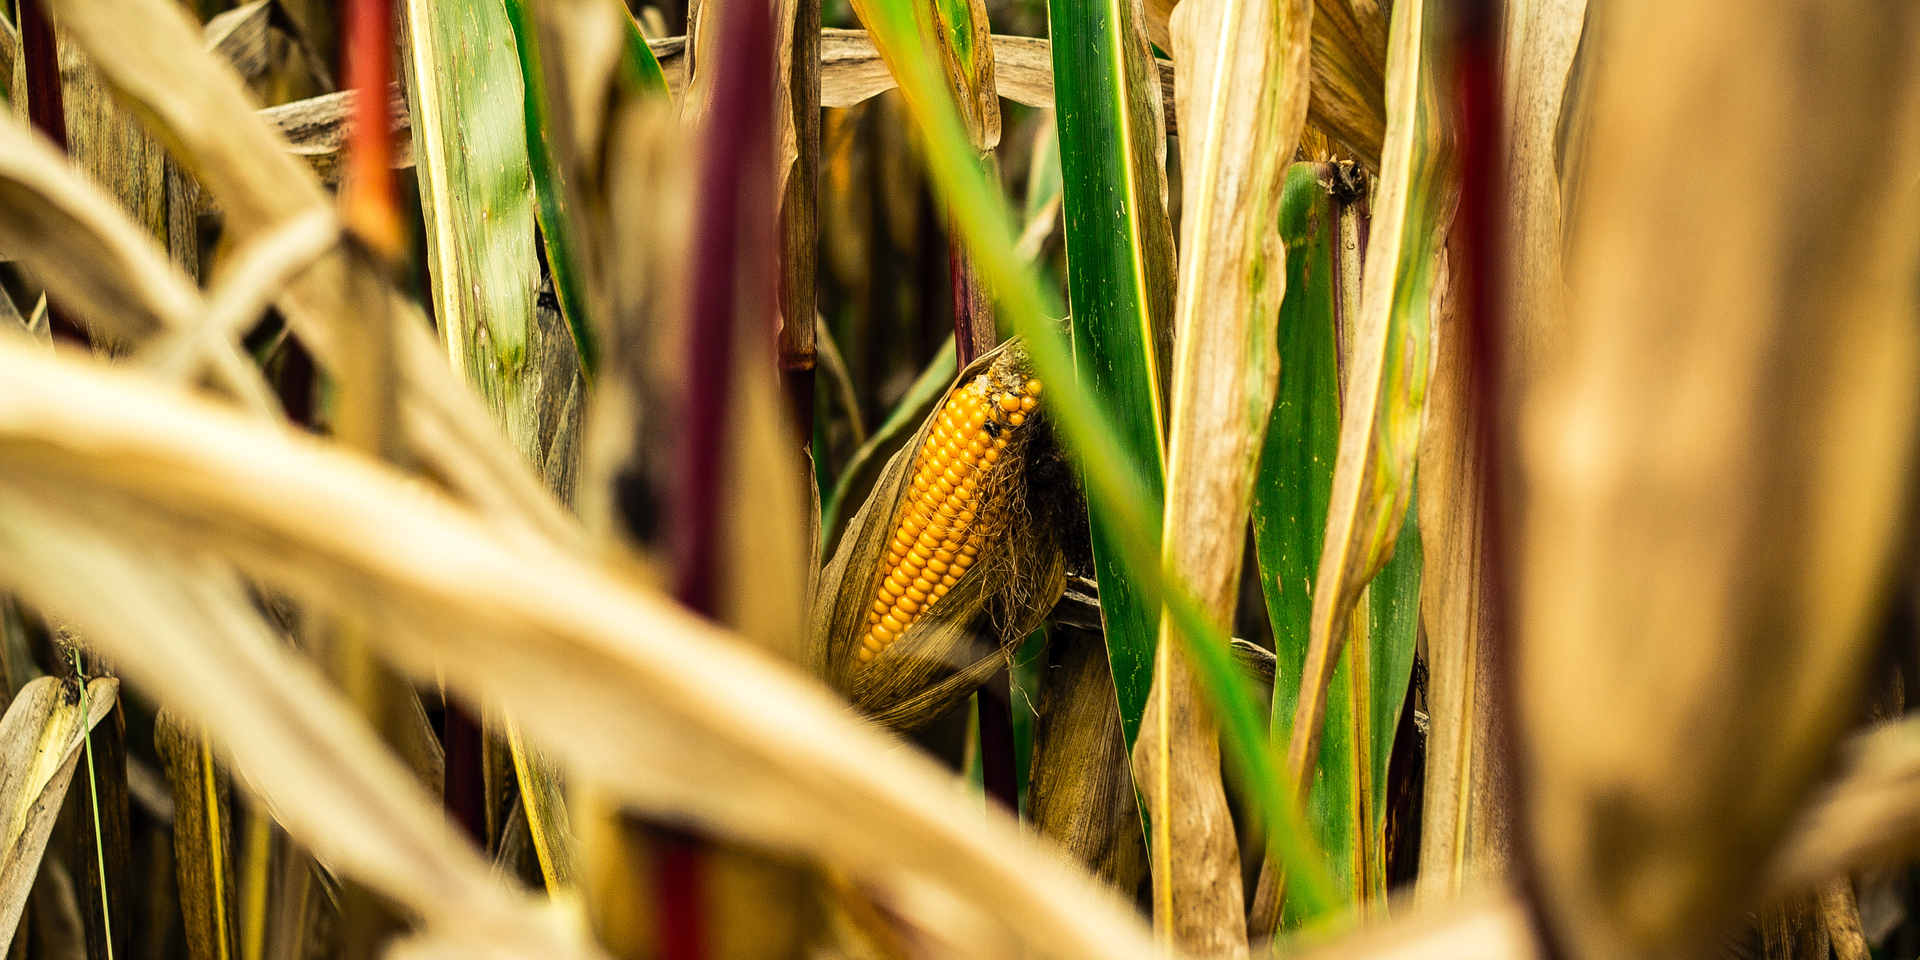 agriculture-blur-bright-cereal-614006.jp